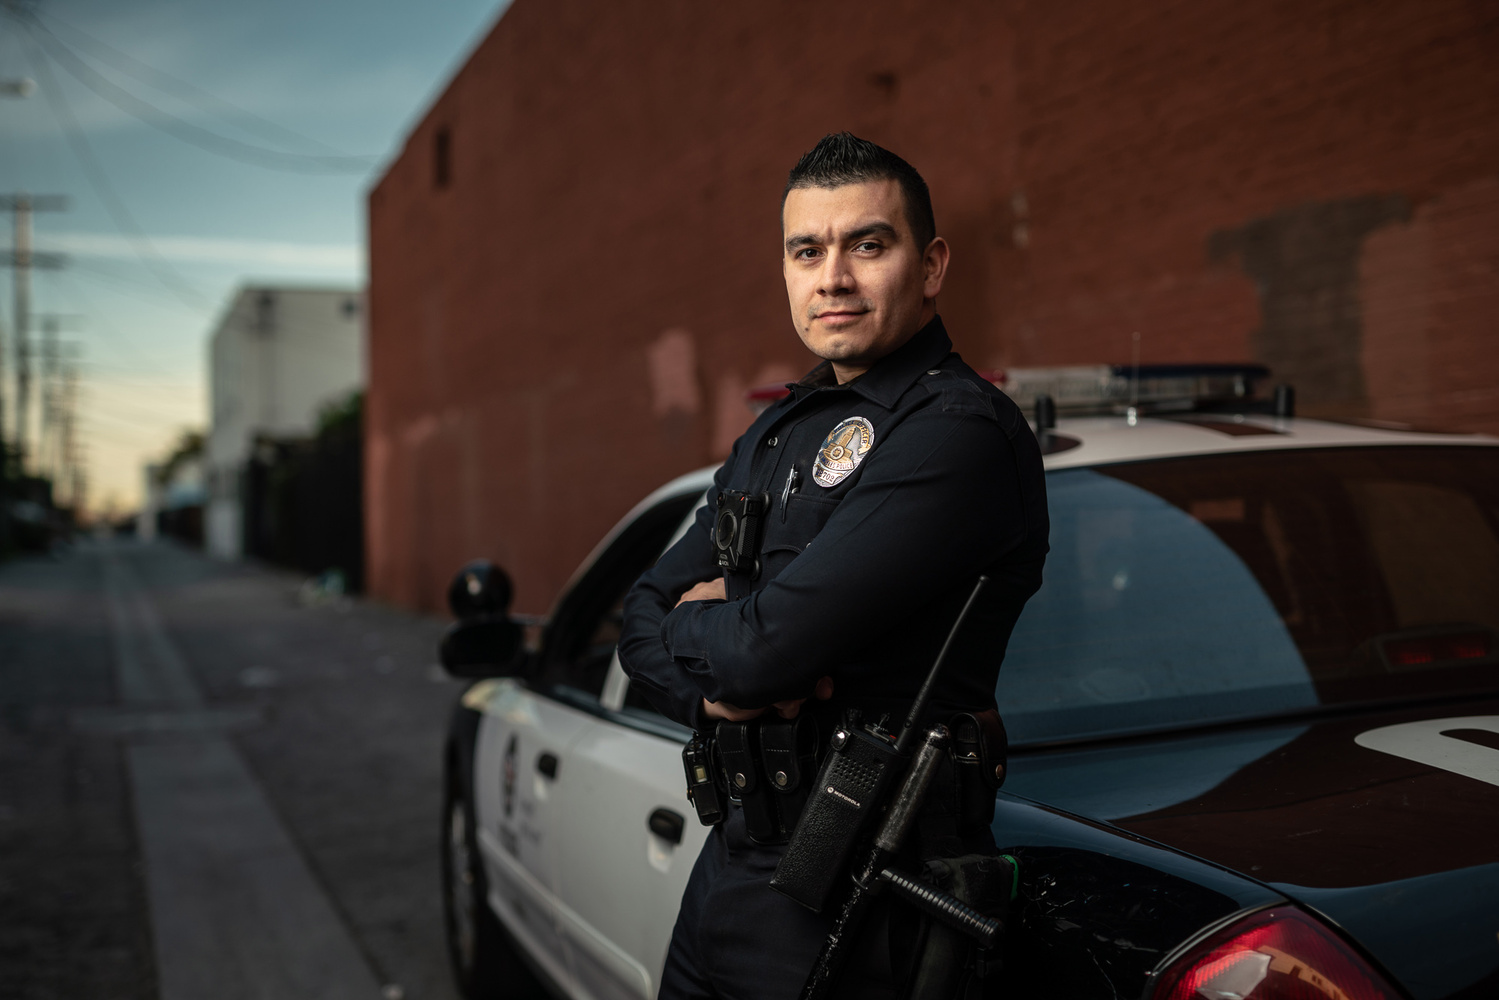 Life and work of a real Los Angeles Cop by Ilya Nodia